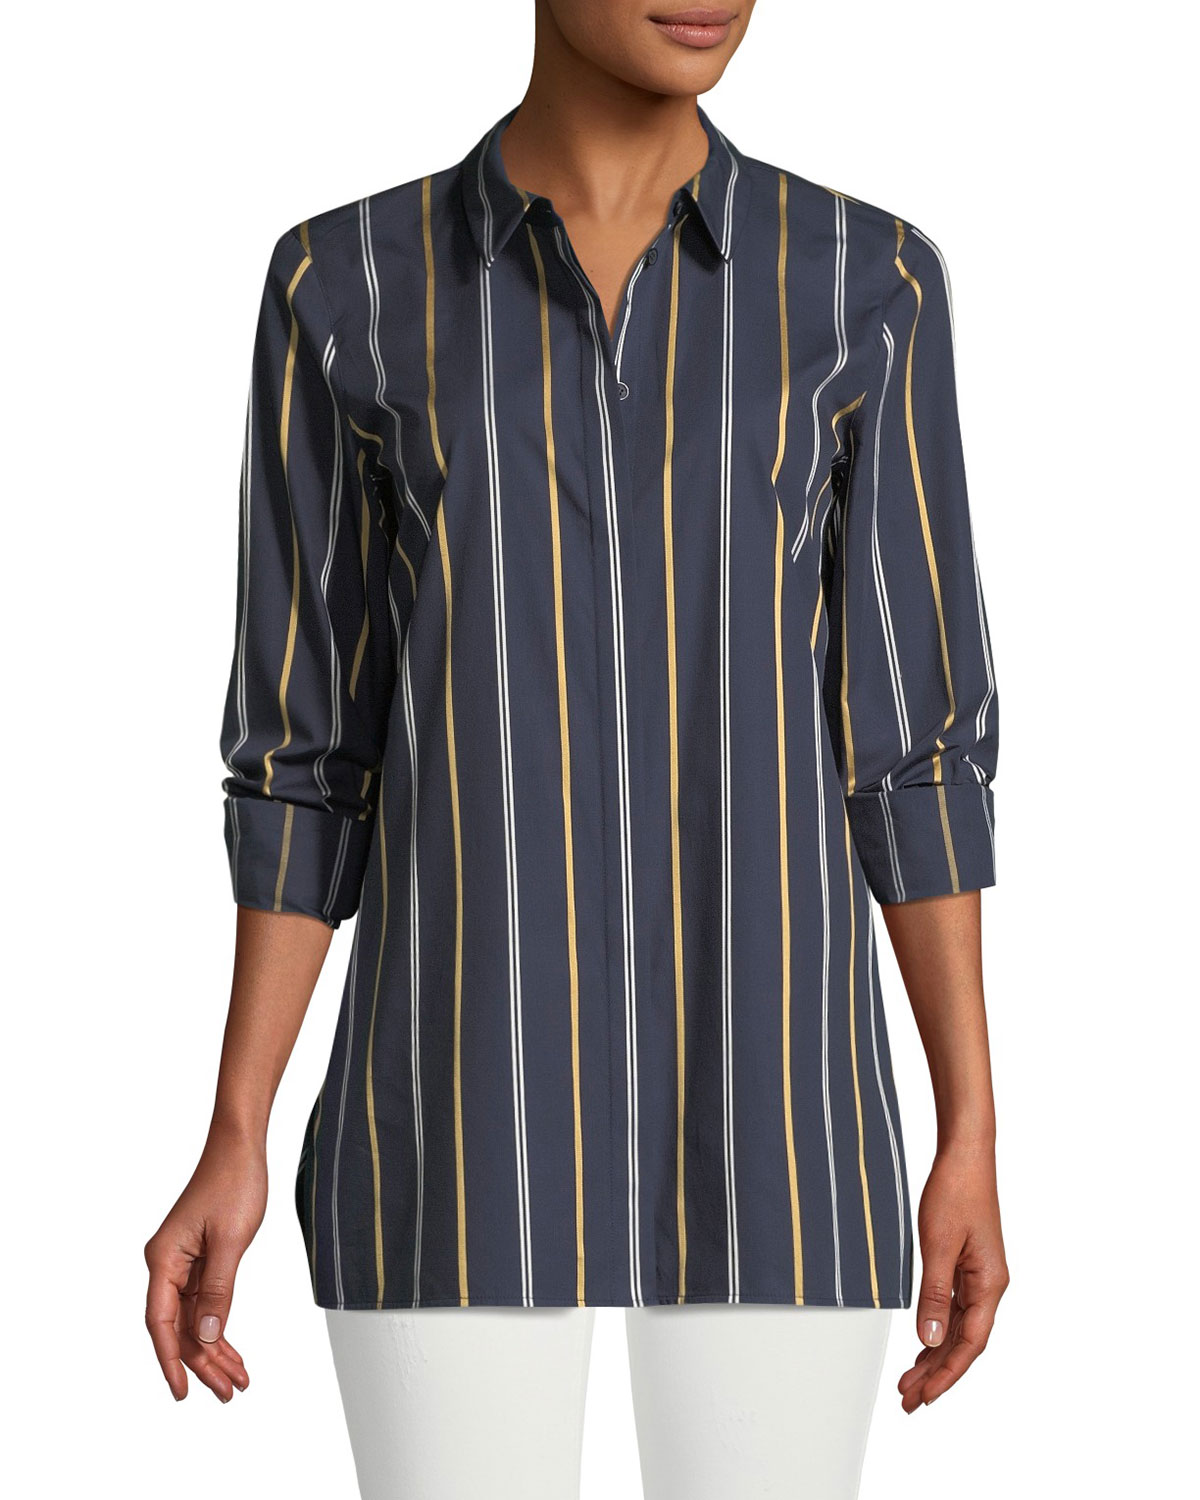 Brayden Riverside Stripe Blouse